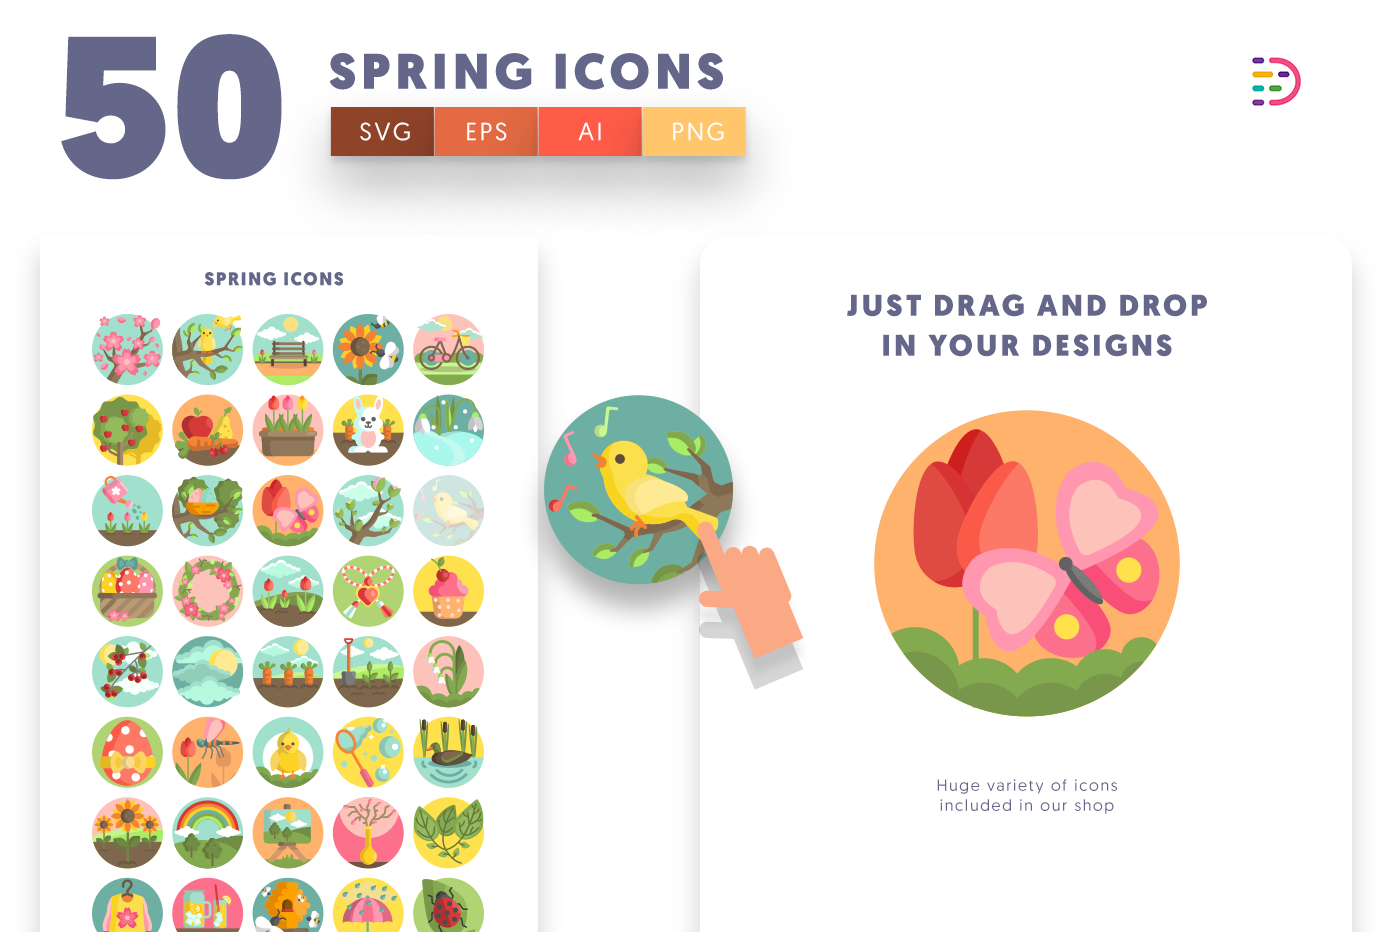 50 Spring Icons with colored backgrounds